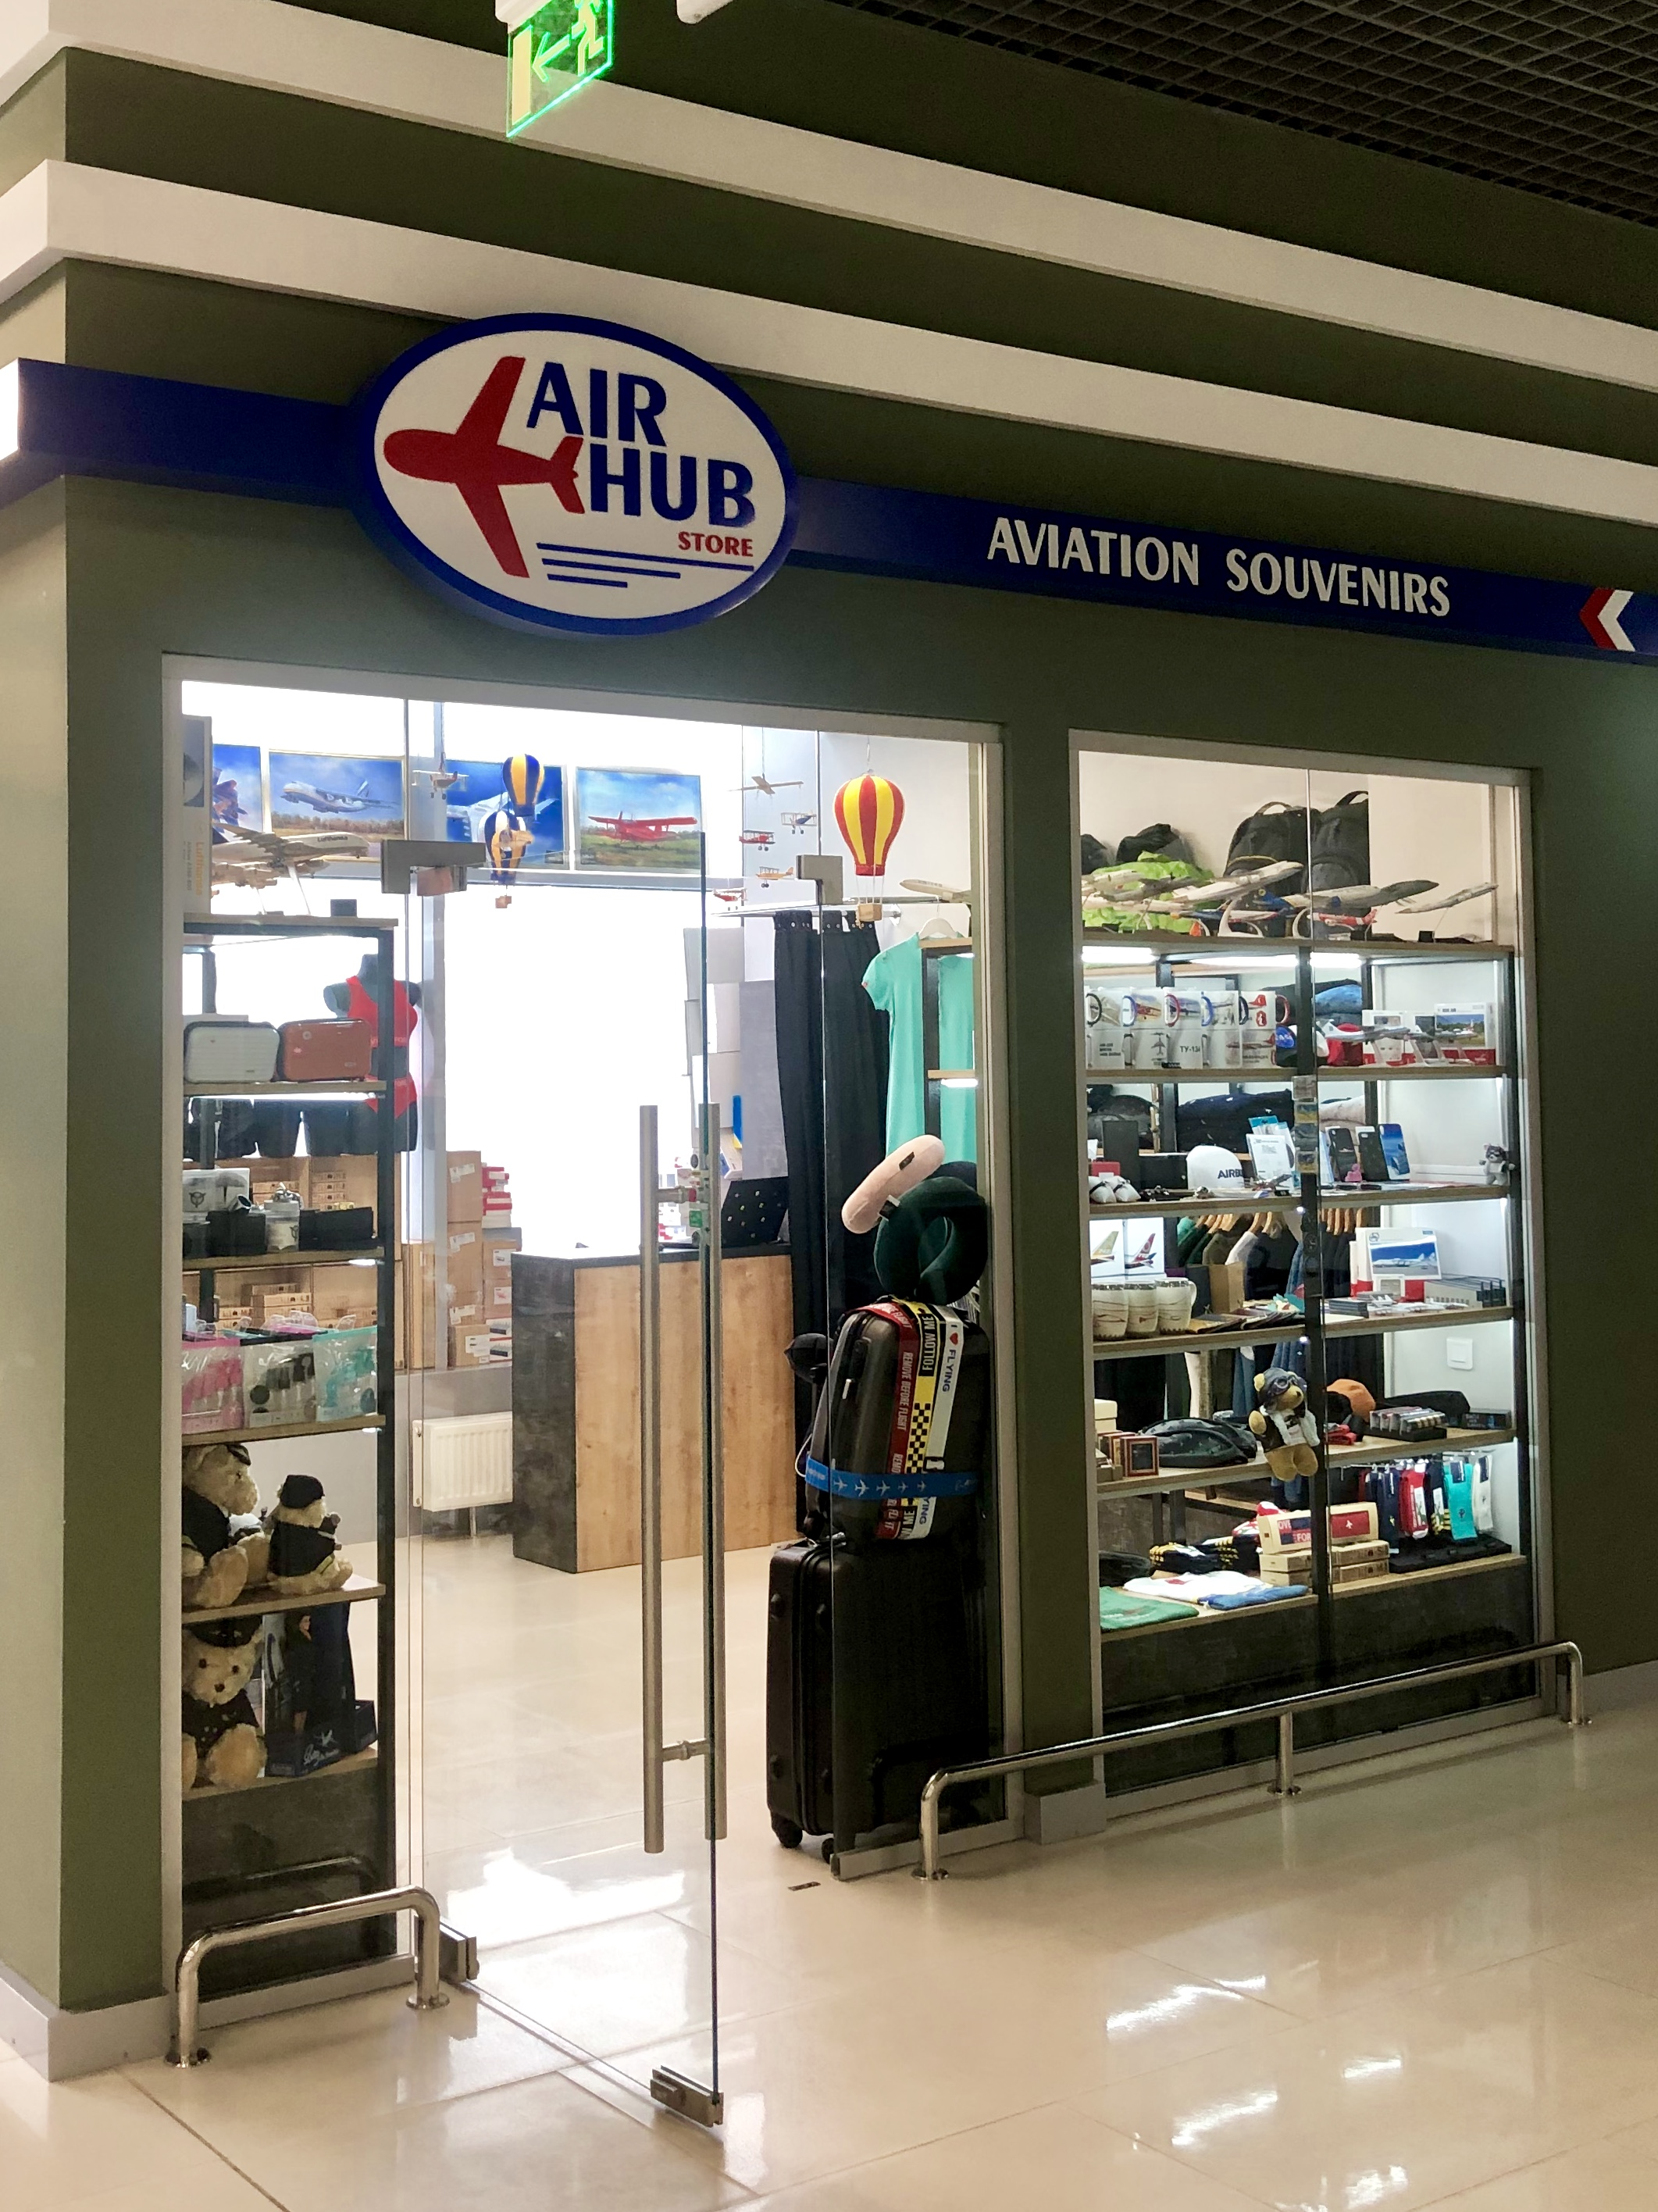 AirHub Store — aviation souvenirs in IEV International airport